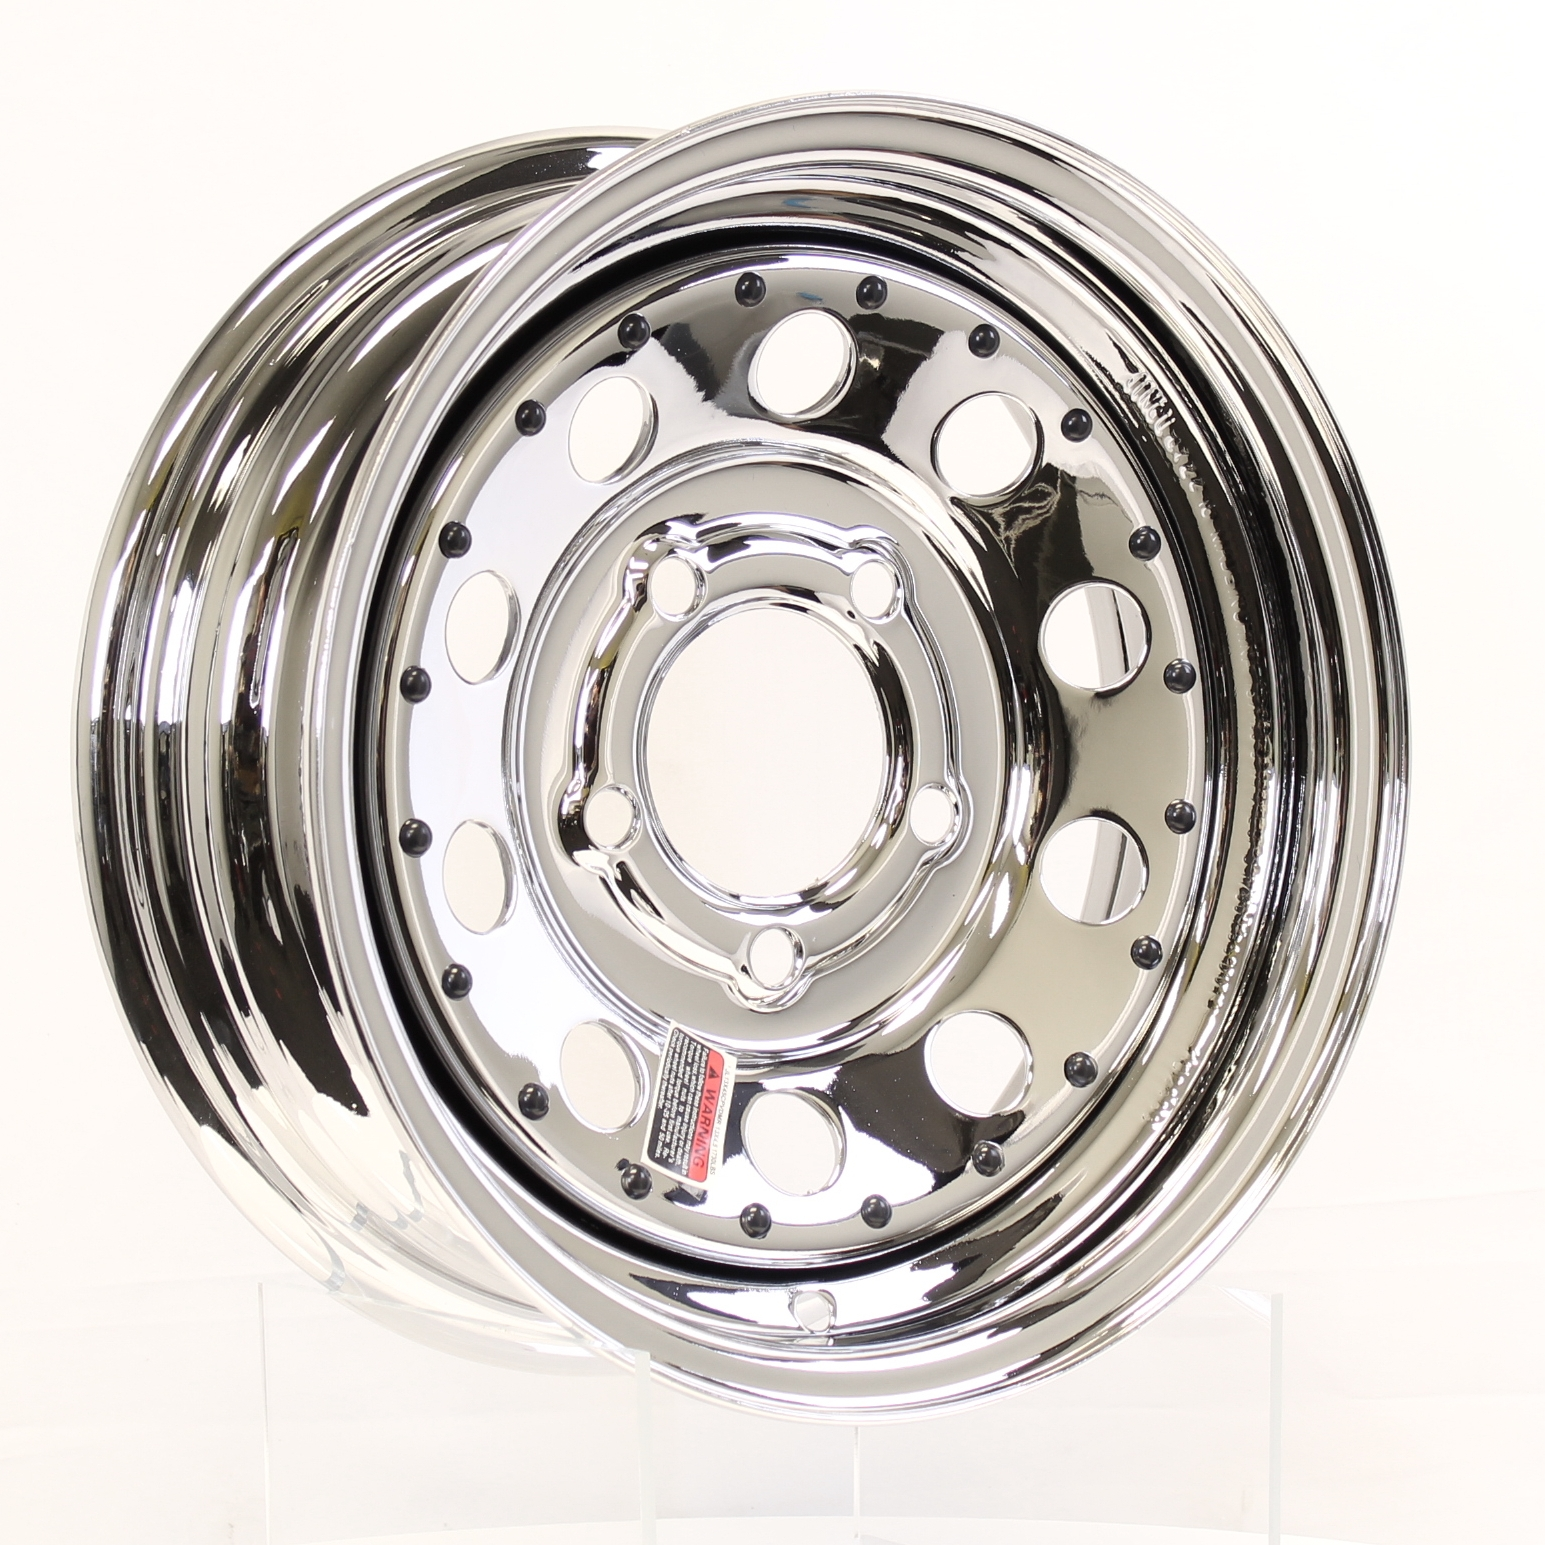 14x5.5 5-Lug Chrome Mod Steel Trailer Wheel w/Rivits Image